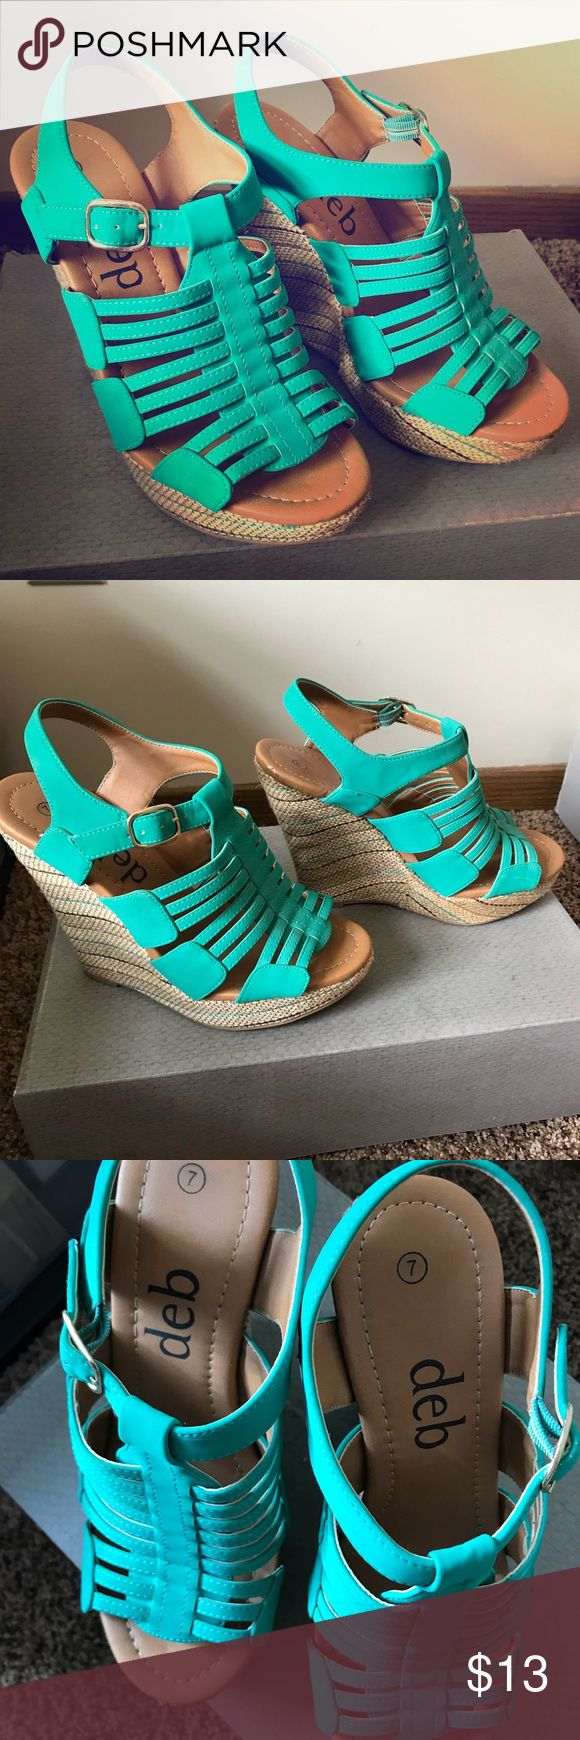 Wedges Like new!! Never worn!!! Teal Wedges. So comfortable. Deb Shoes Wedges